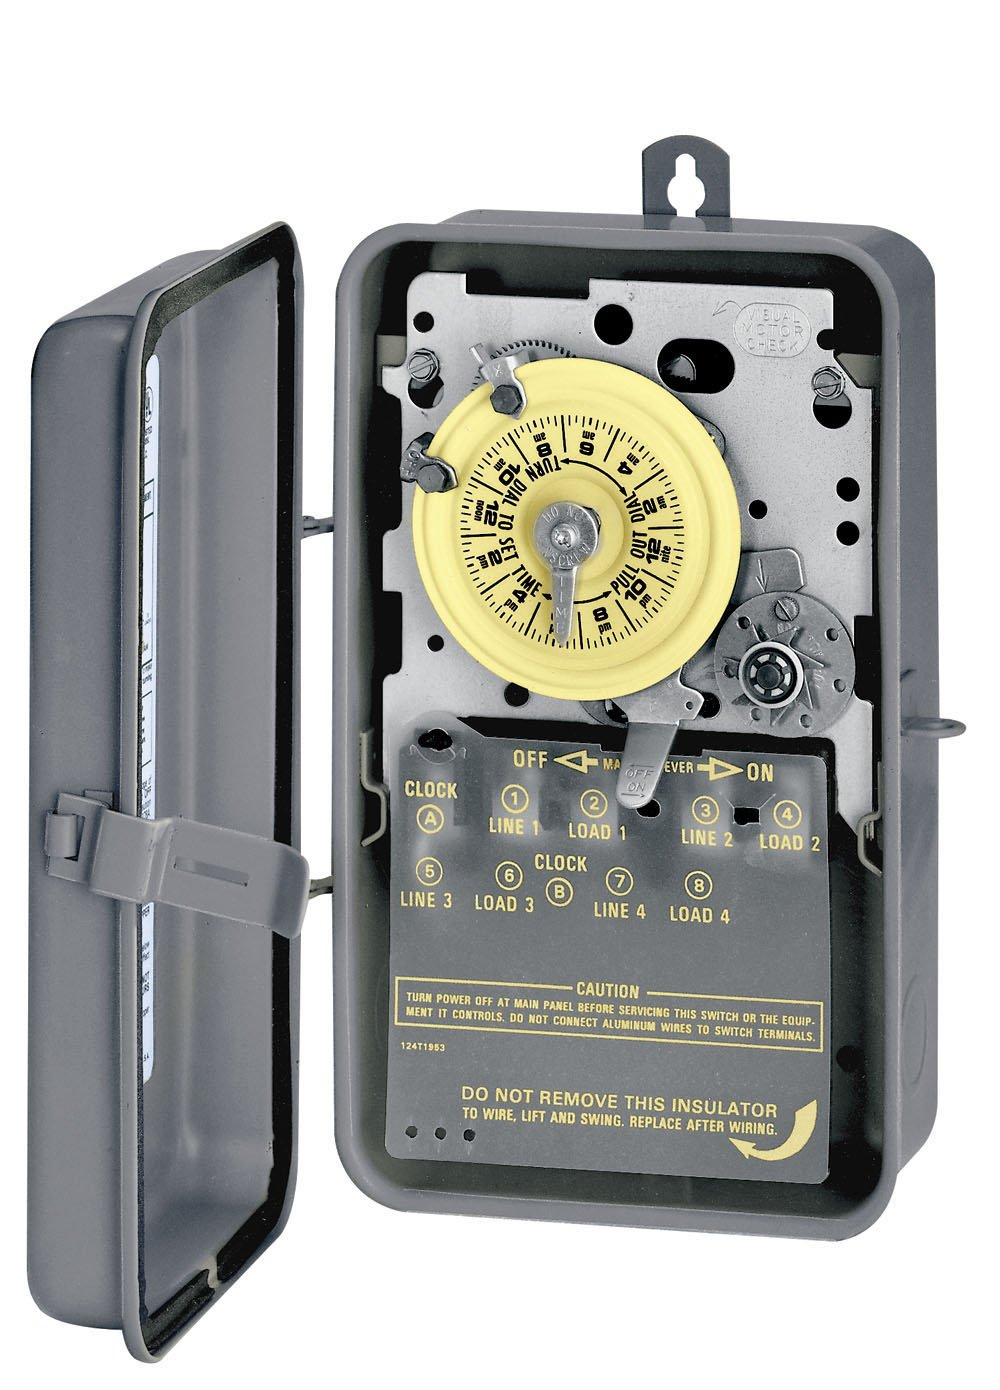 Intermatic T1471BCR 4PST 24 Hour 125-Volt Time Switch with 3R Steel Case